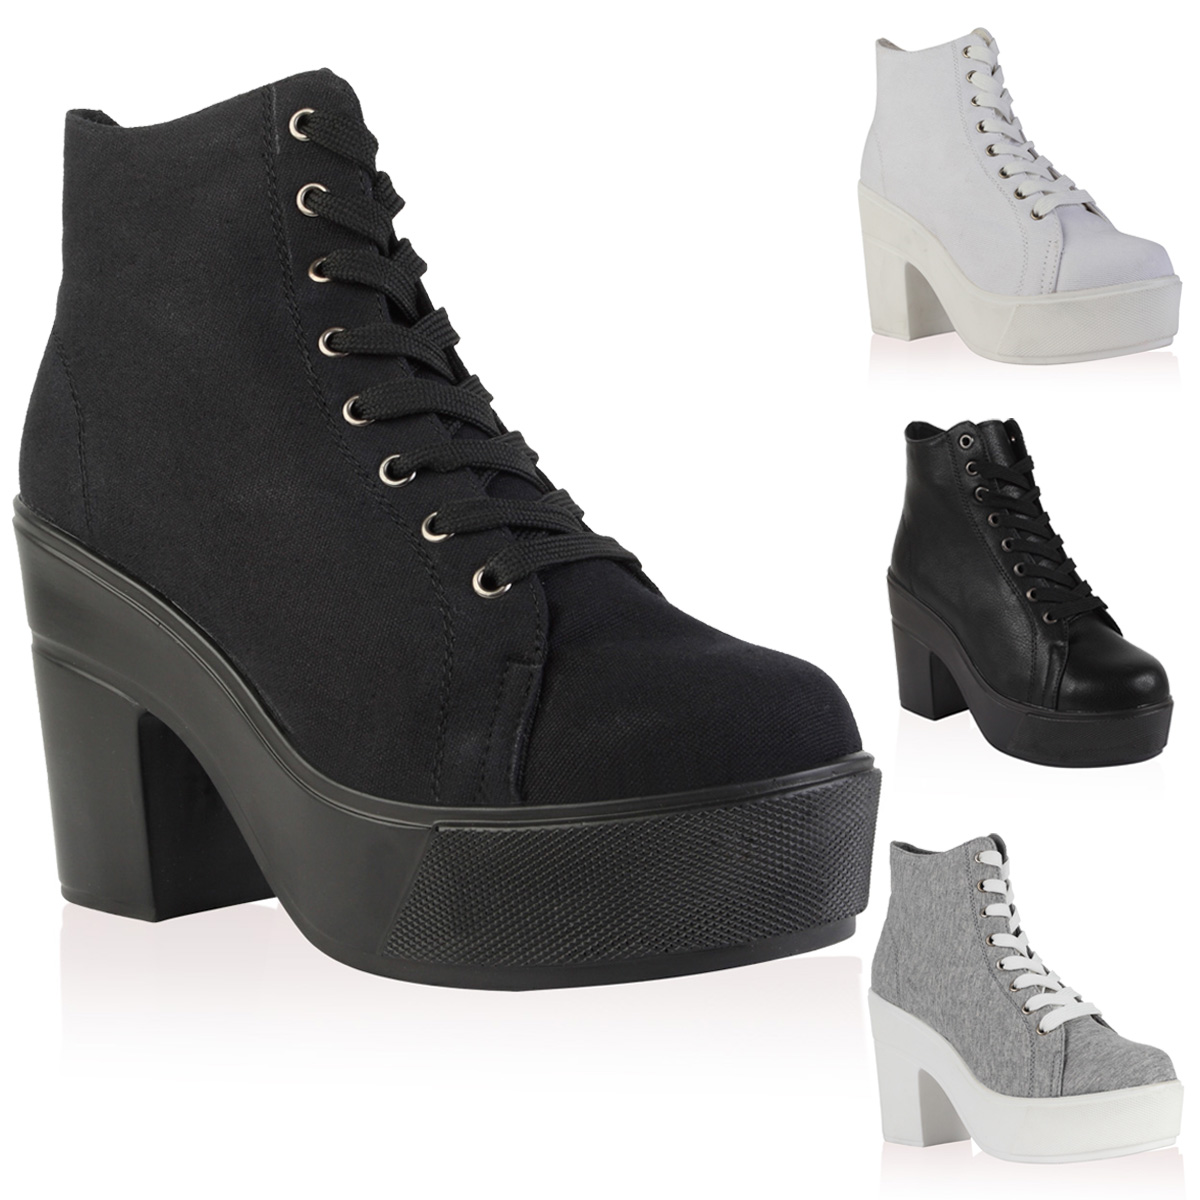 NEW WOMENS LACE UP CANVAS LADIES PLATFORM BLOCK HEEL ANKLE BOOTS ...